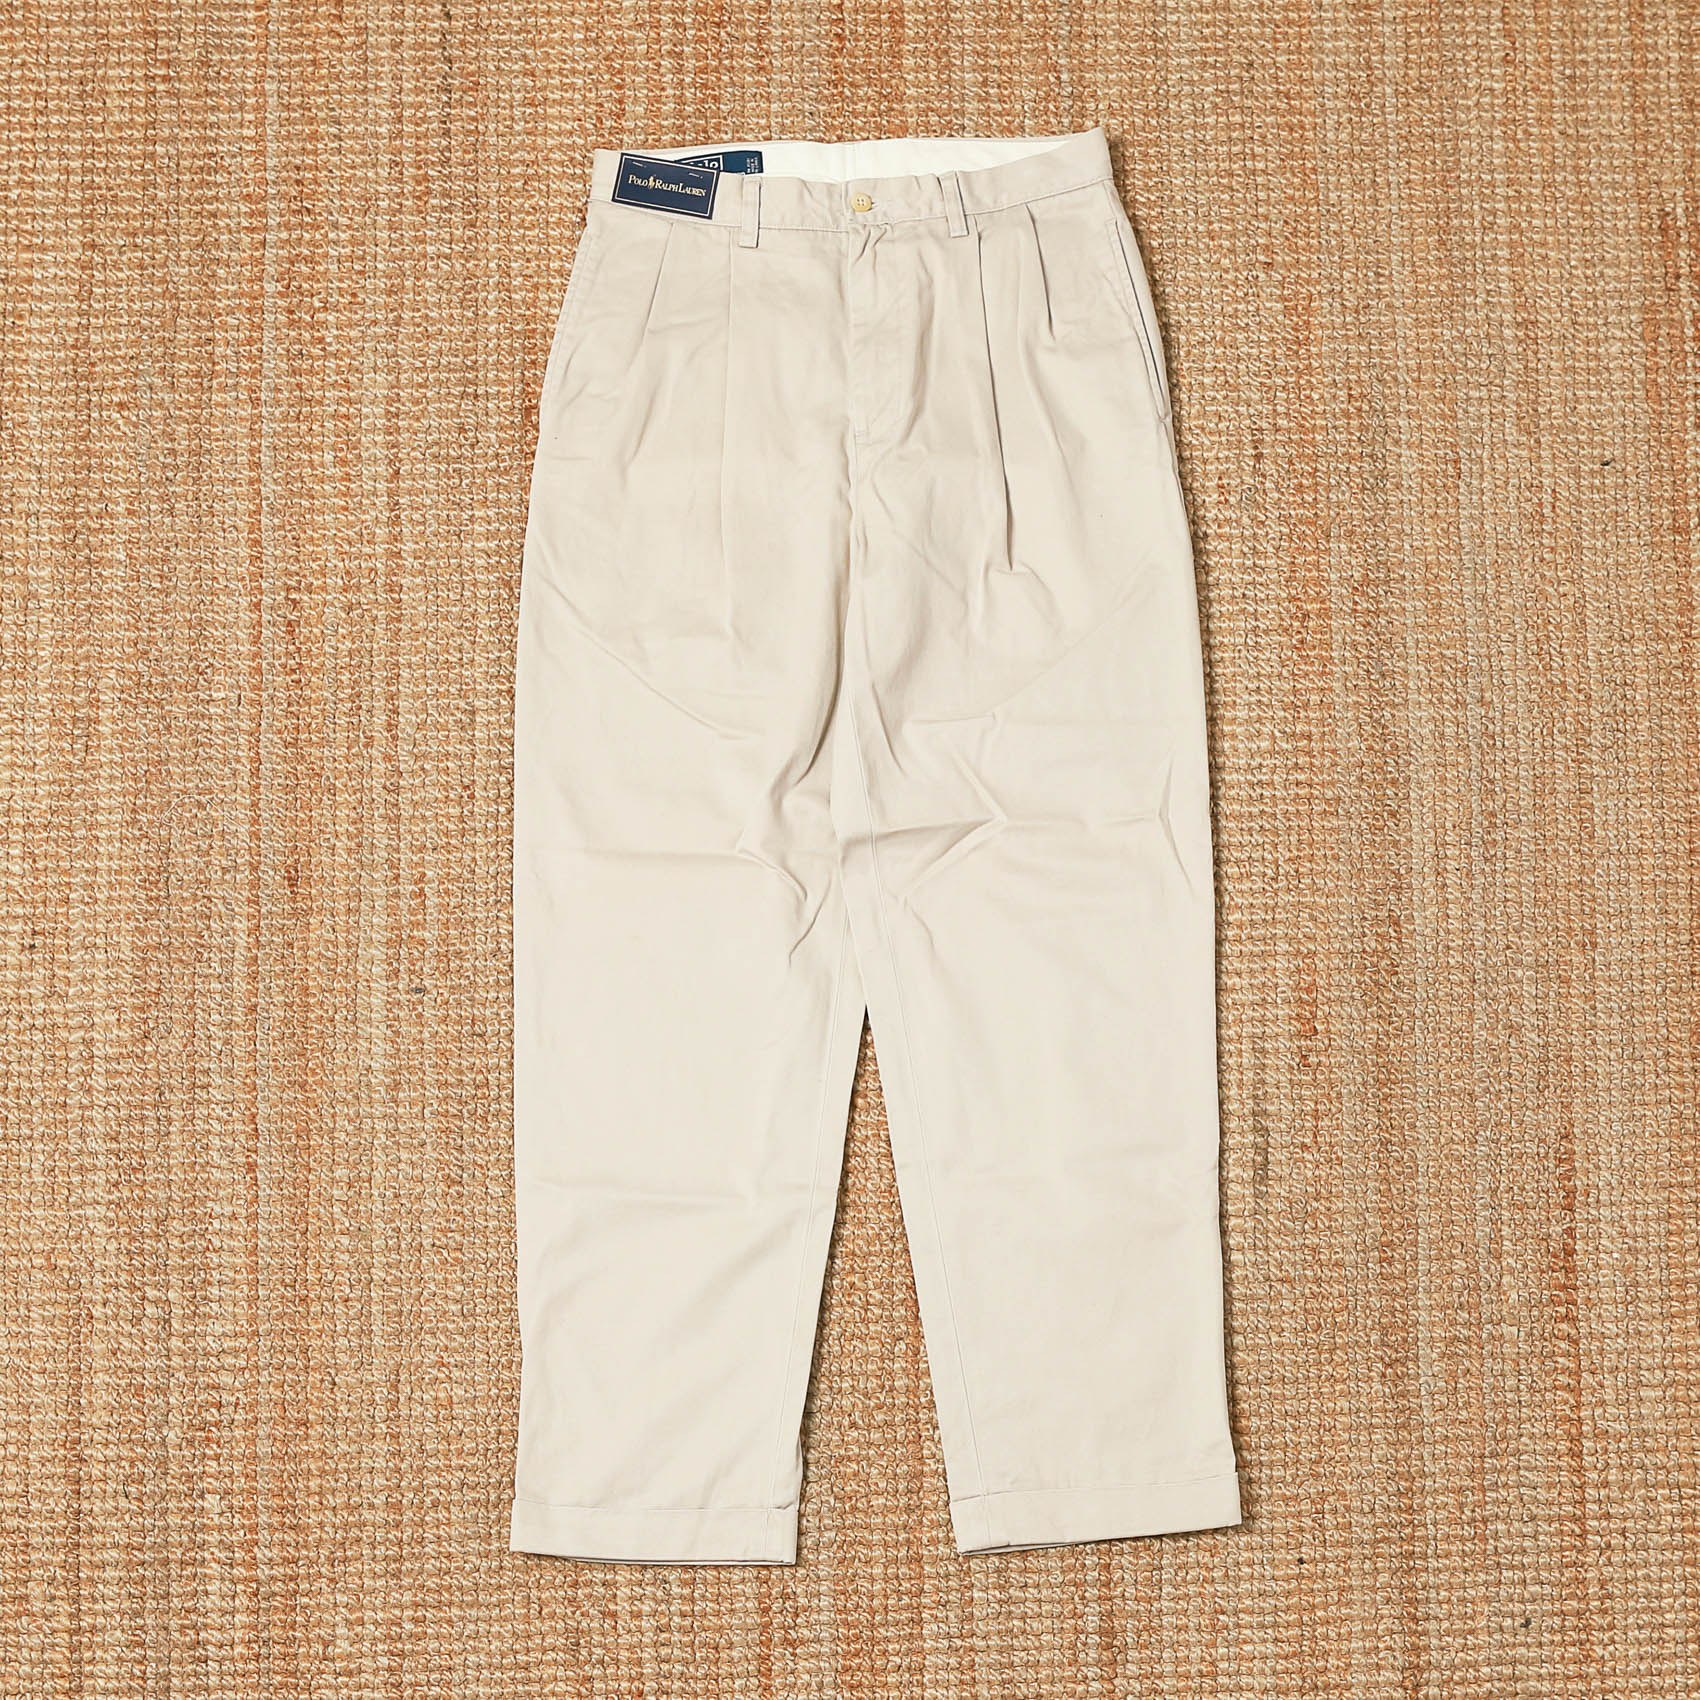 POLO RALPH LAUREN TWO-TUCK CHINO - BEIGE